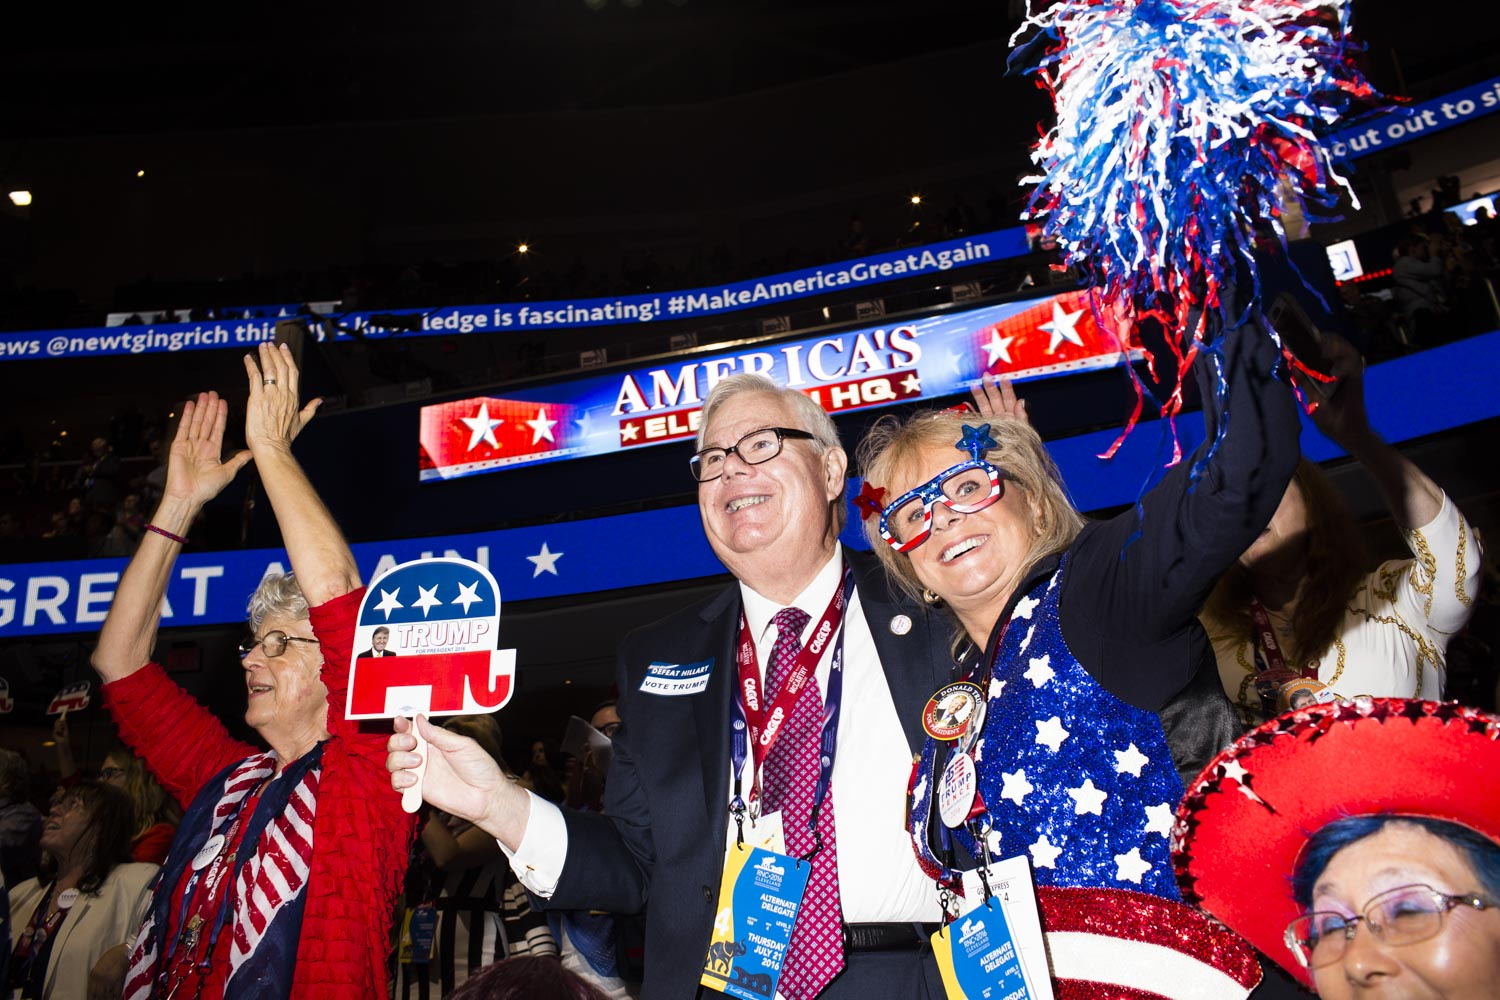 Scenes from the floor at the 2016 Republican National Convention in Cleveland on Thursday, July 21, 2016.